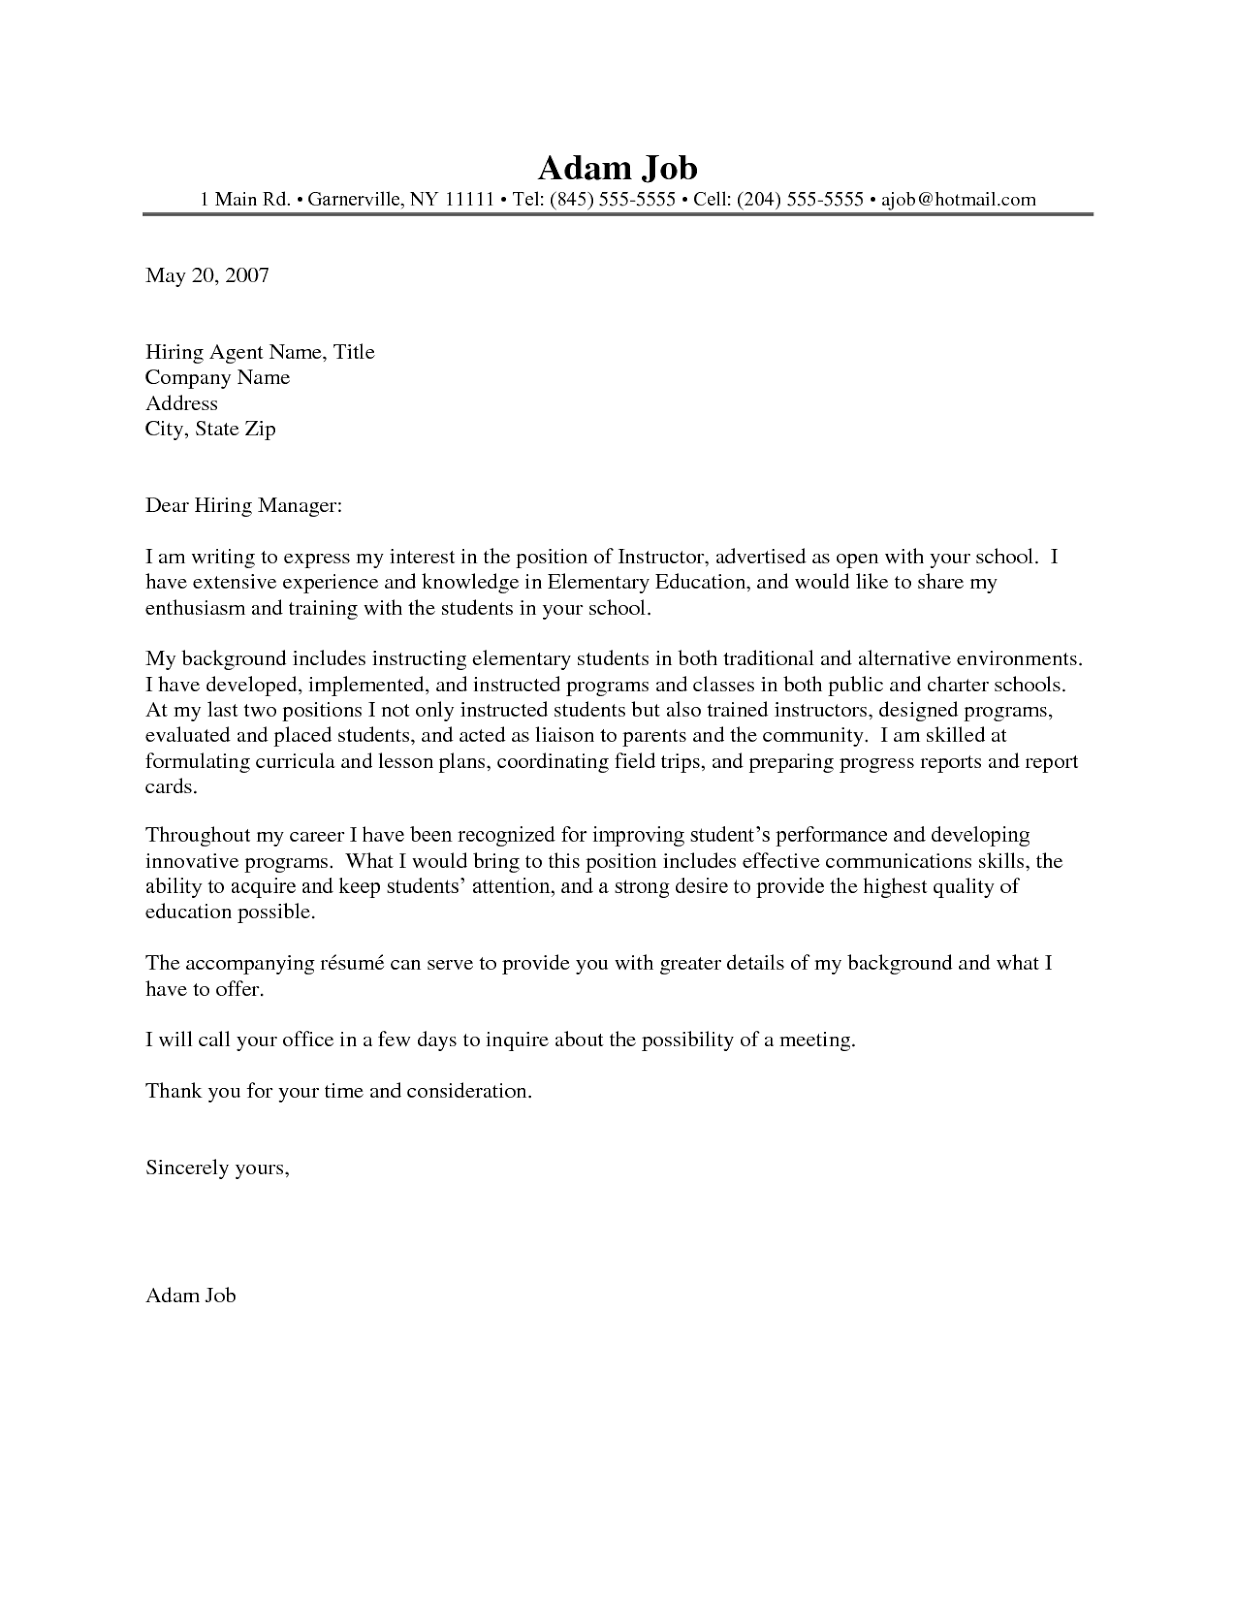 Inspirational Sample Cover Letter For Adjunct Faculty Position Resume College Instructor